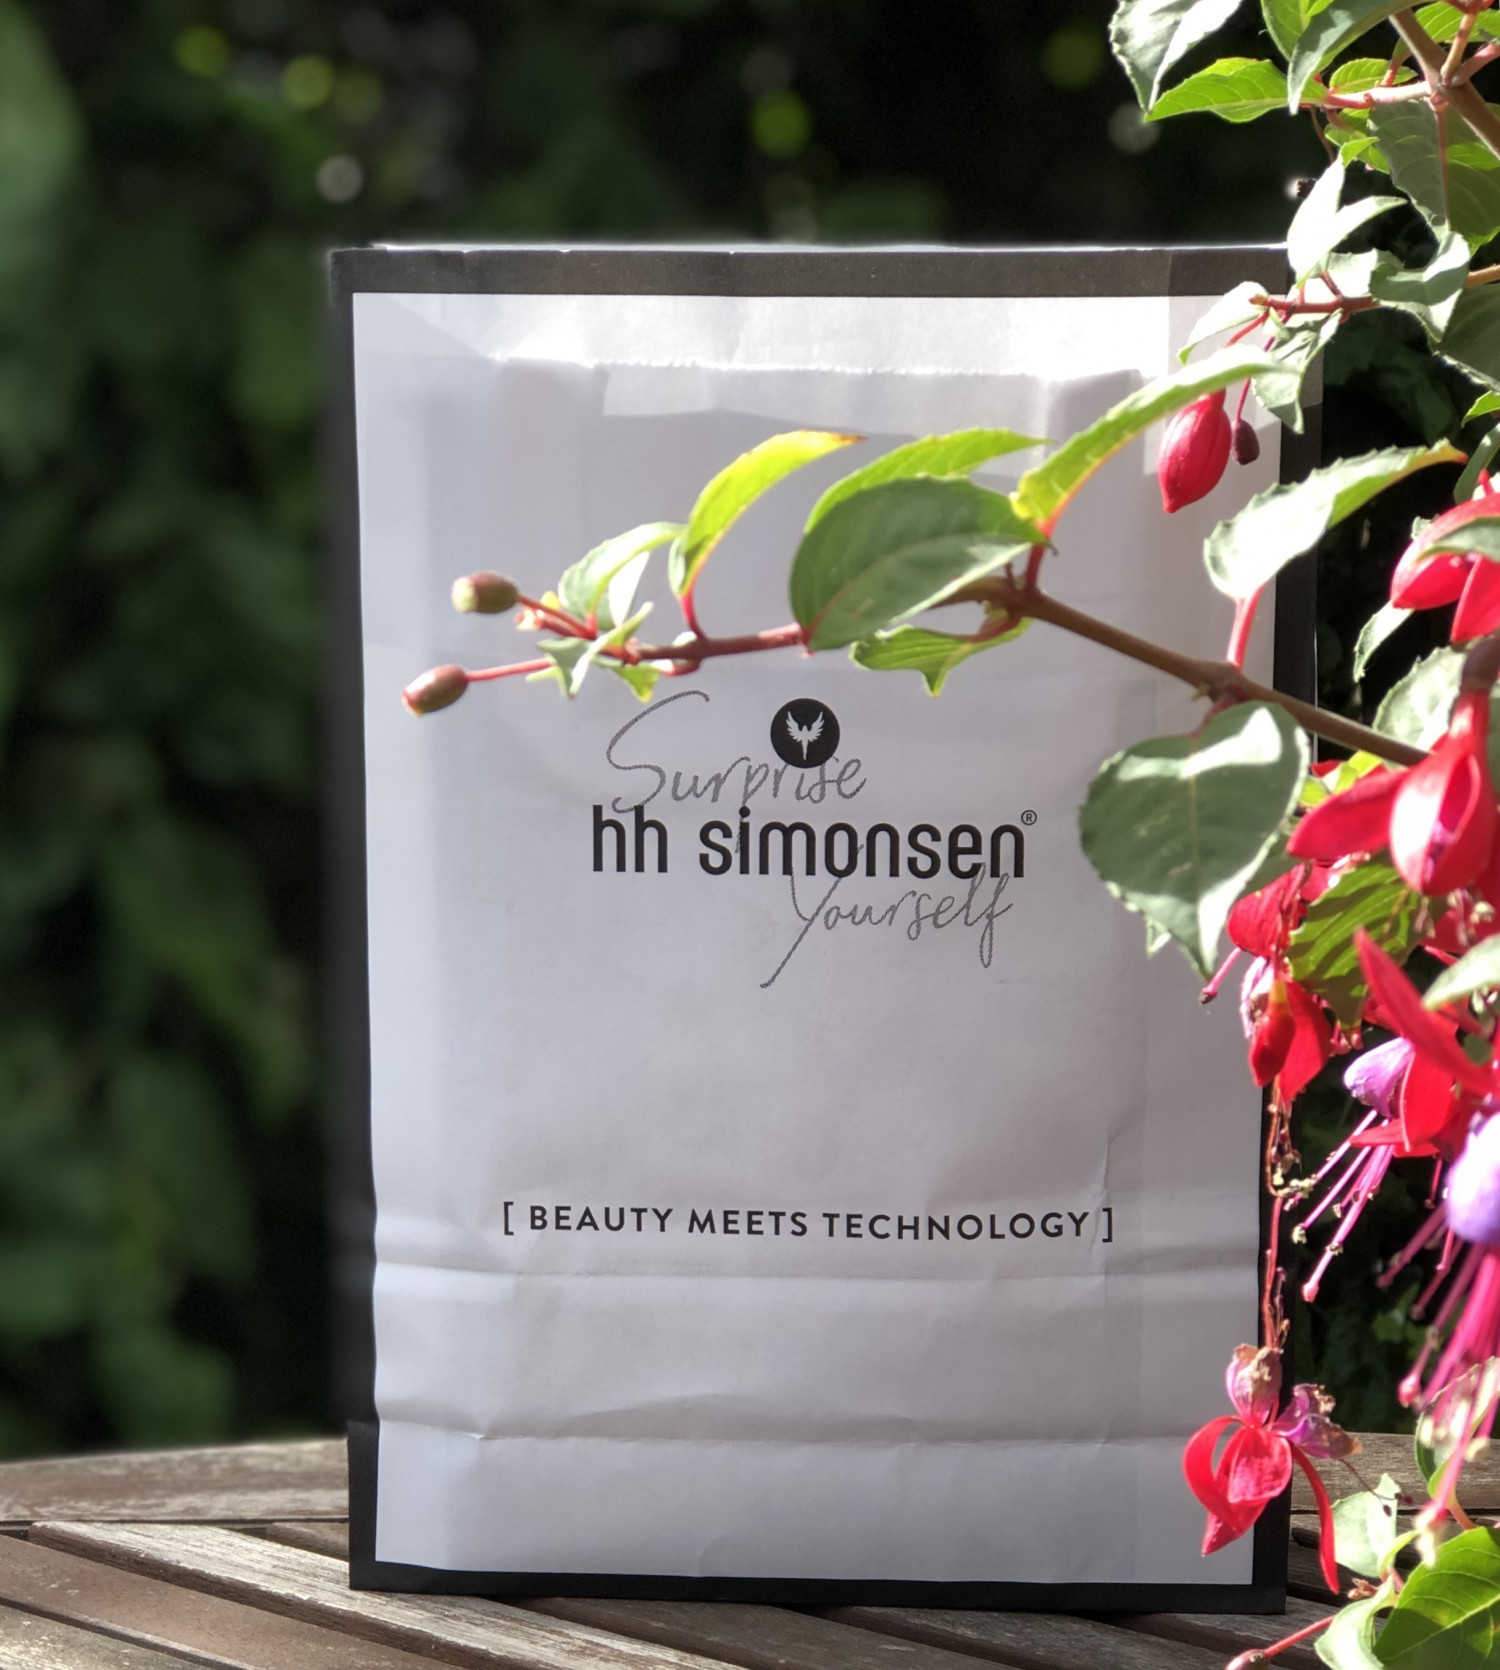 HH Simonsen, HH Simonsen Wetline, Billigvoks, Billigvoks.dk, Test, Anmeldelse, Shampoo, Conditioner, HH Simonsen Shampoo, HH Simonsen Conditioner, Dream Big, Volume Shampoo, Volume Conditioner, Dream Big and turn up the volume, Krummeskrummelurer, Krummeskrummelurer.dk, Krummes Krummelurer,